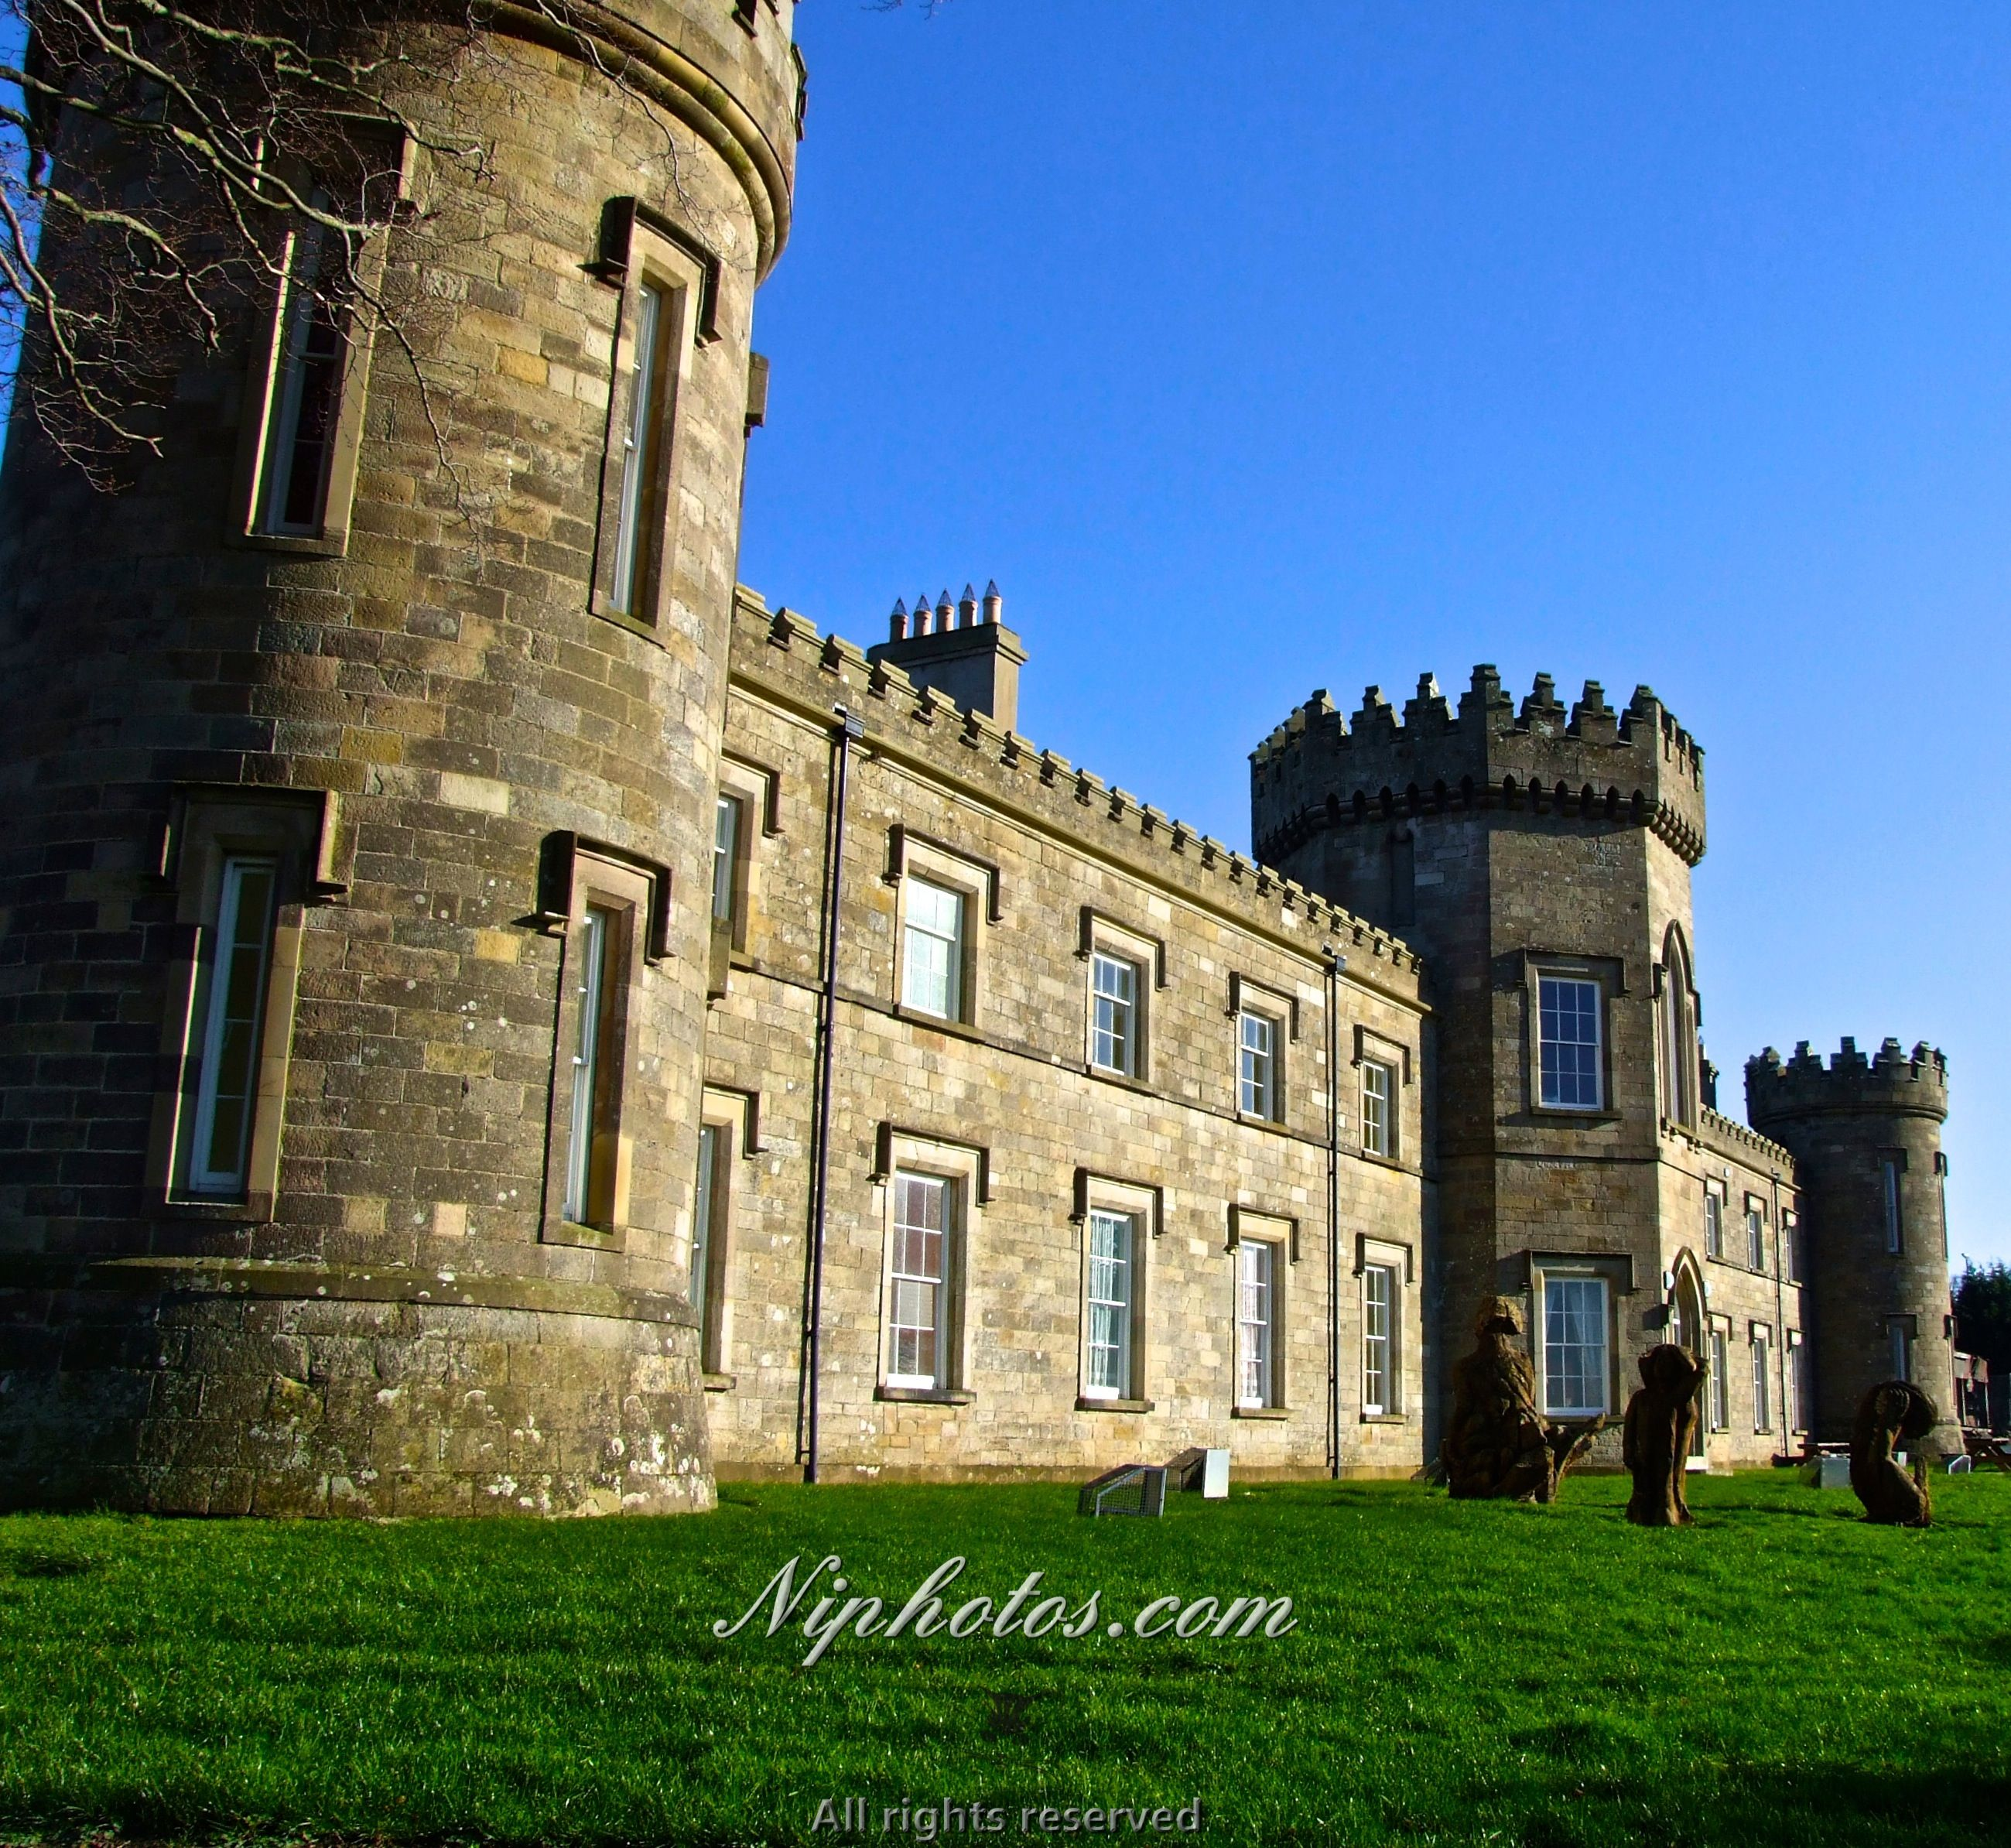 Dungiven castle in County Londonderry Northern Ireland